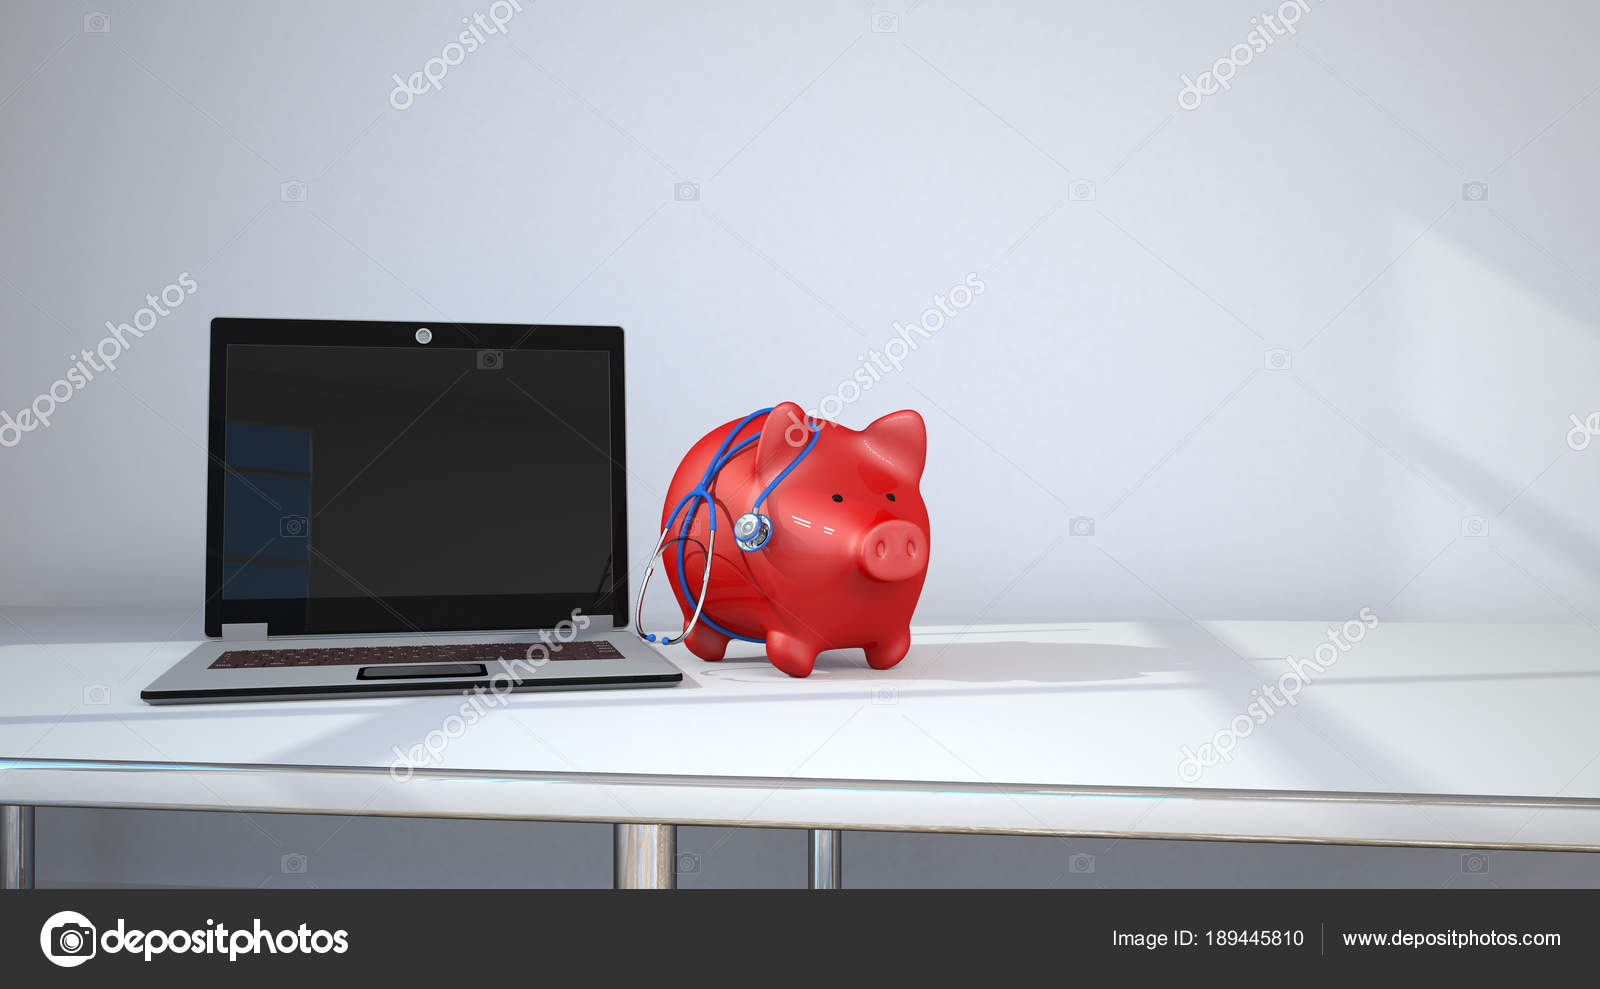 Laptop Tafel Bank : Piggy bank met blauwe stethoscoop laptop tafel kamer illustratie